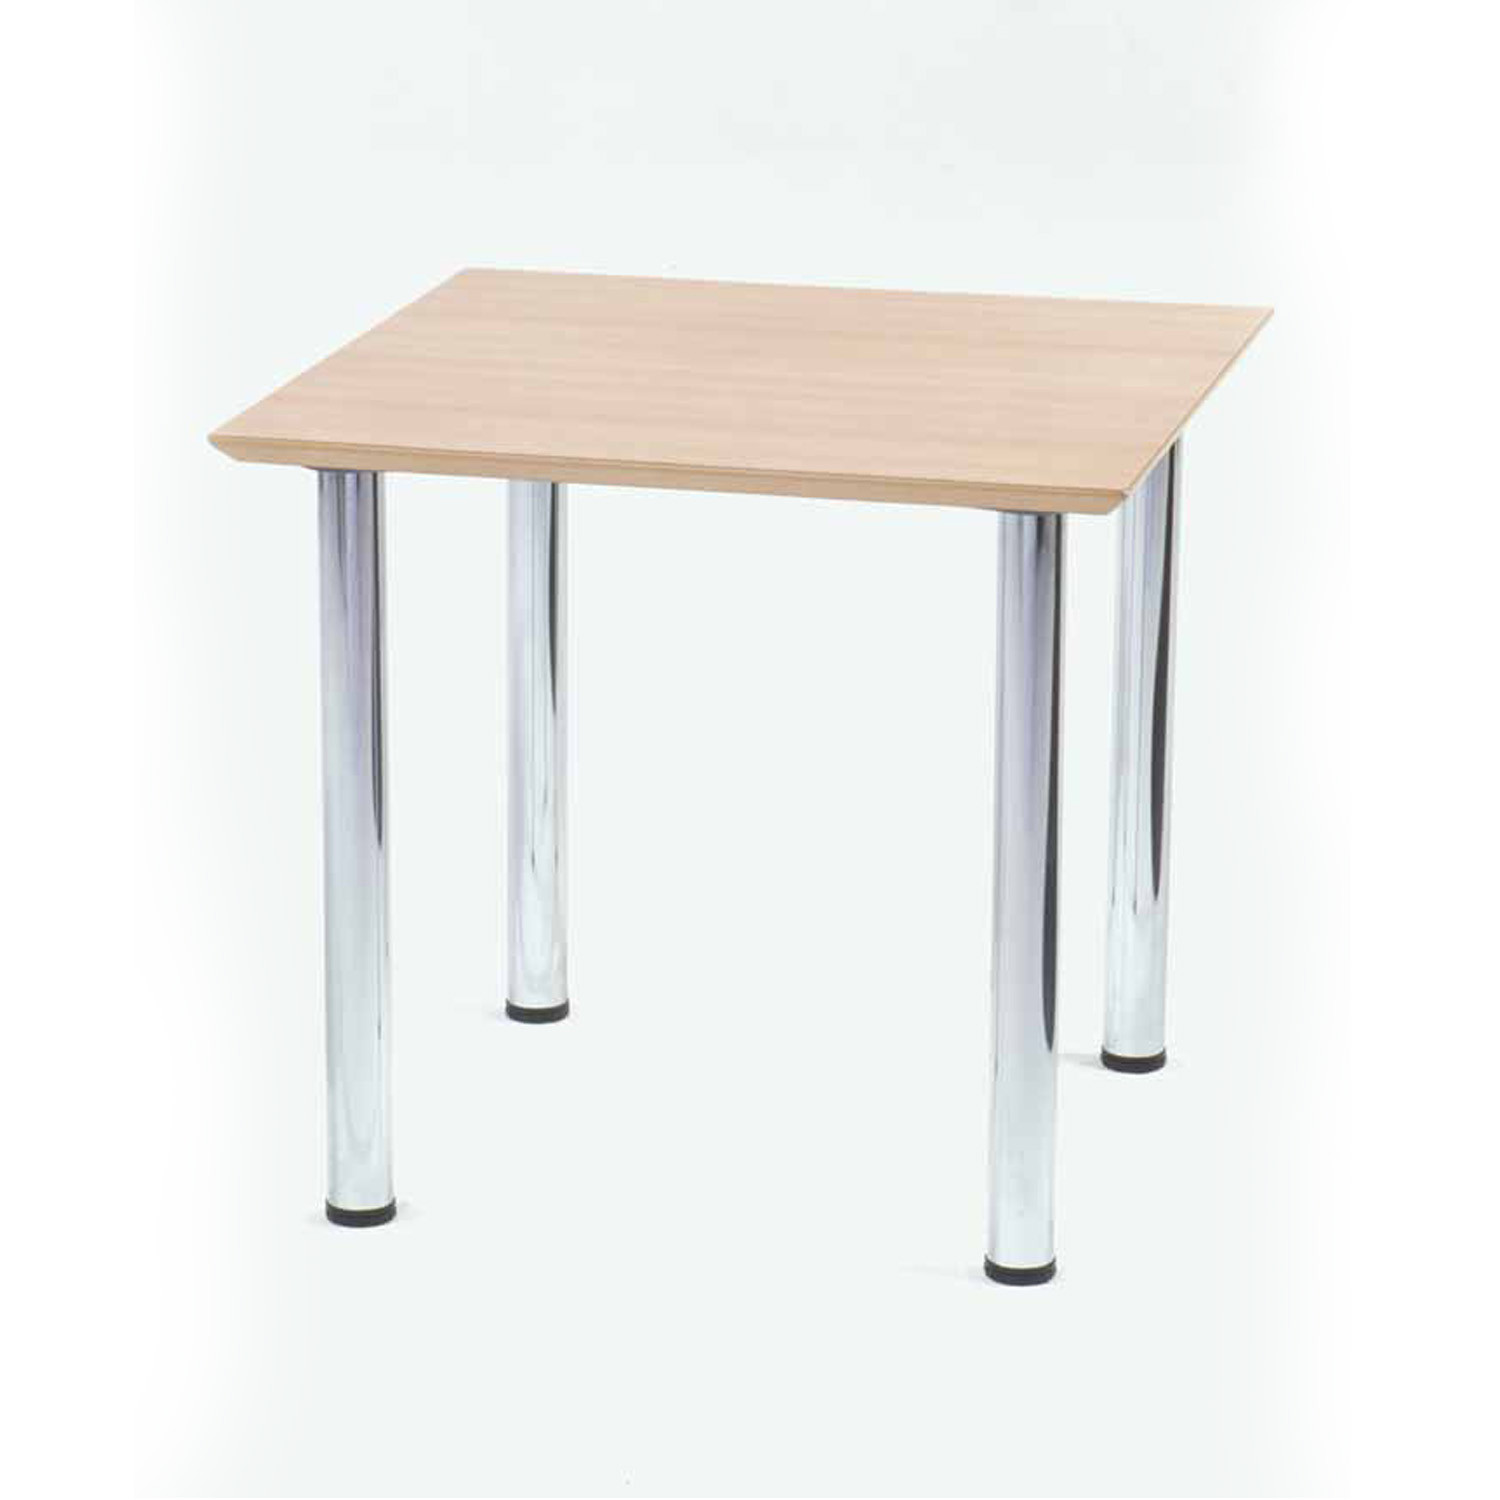 Platto Square Table